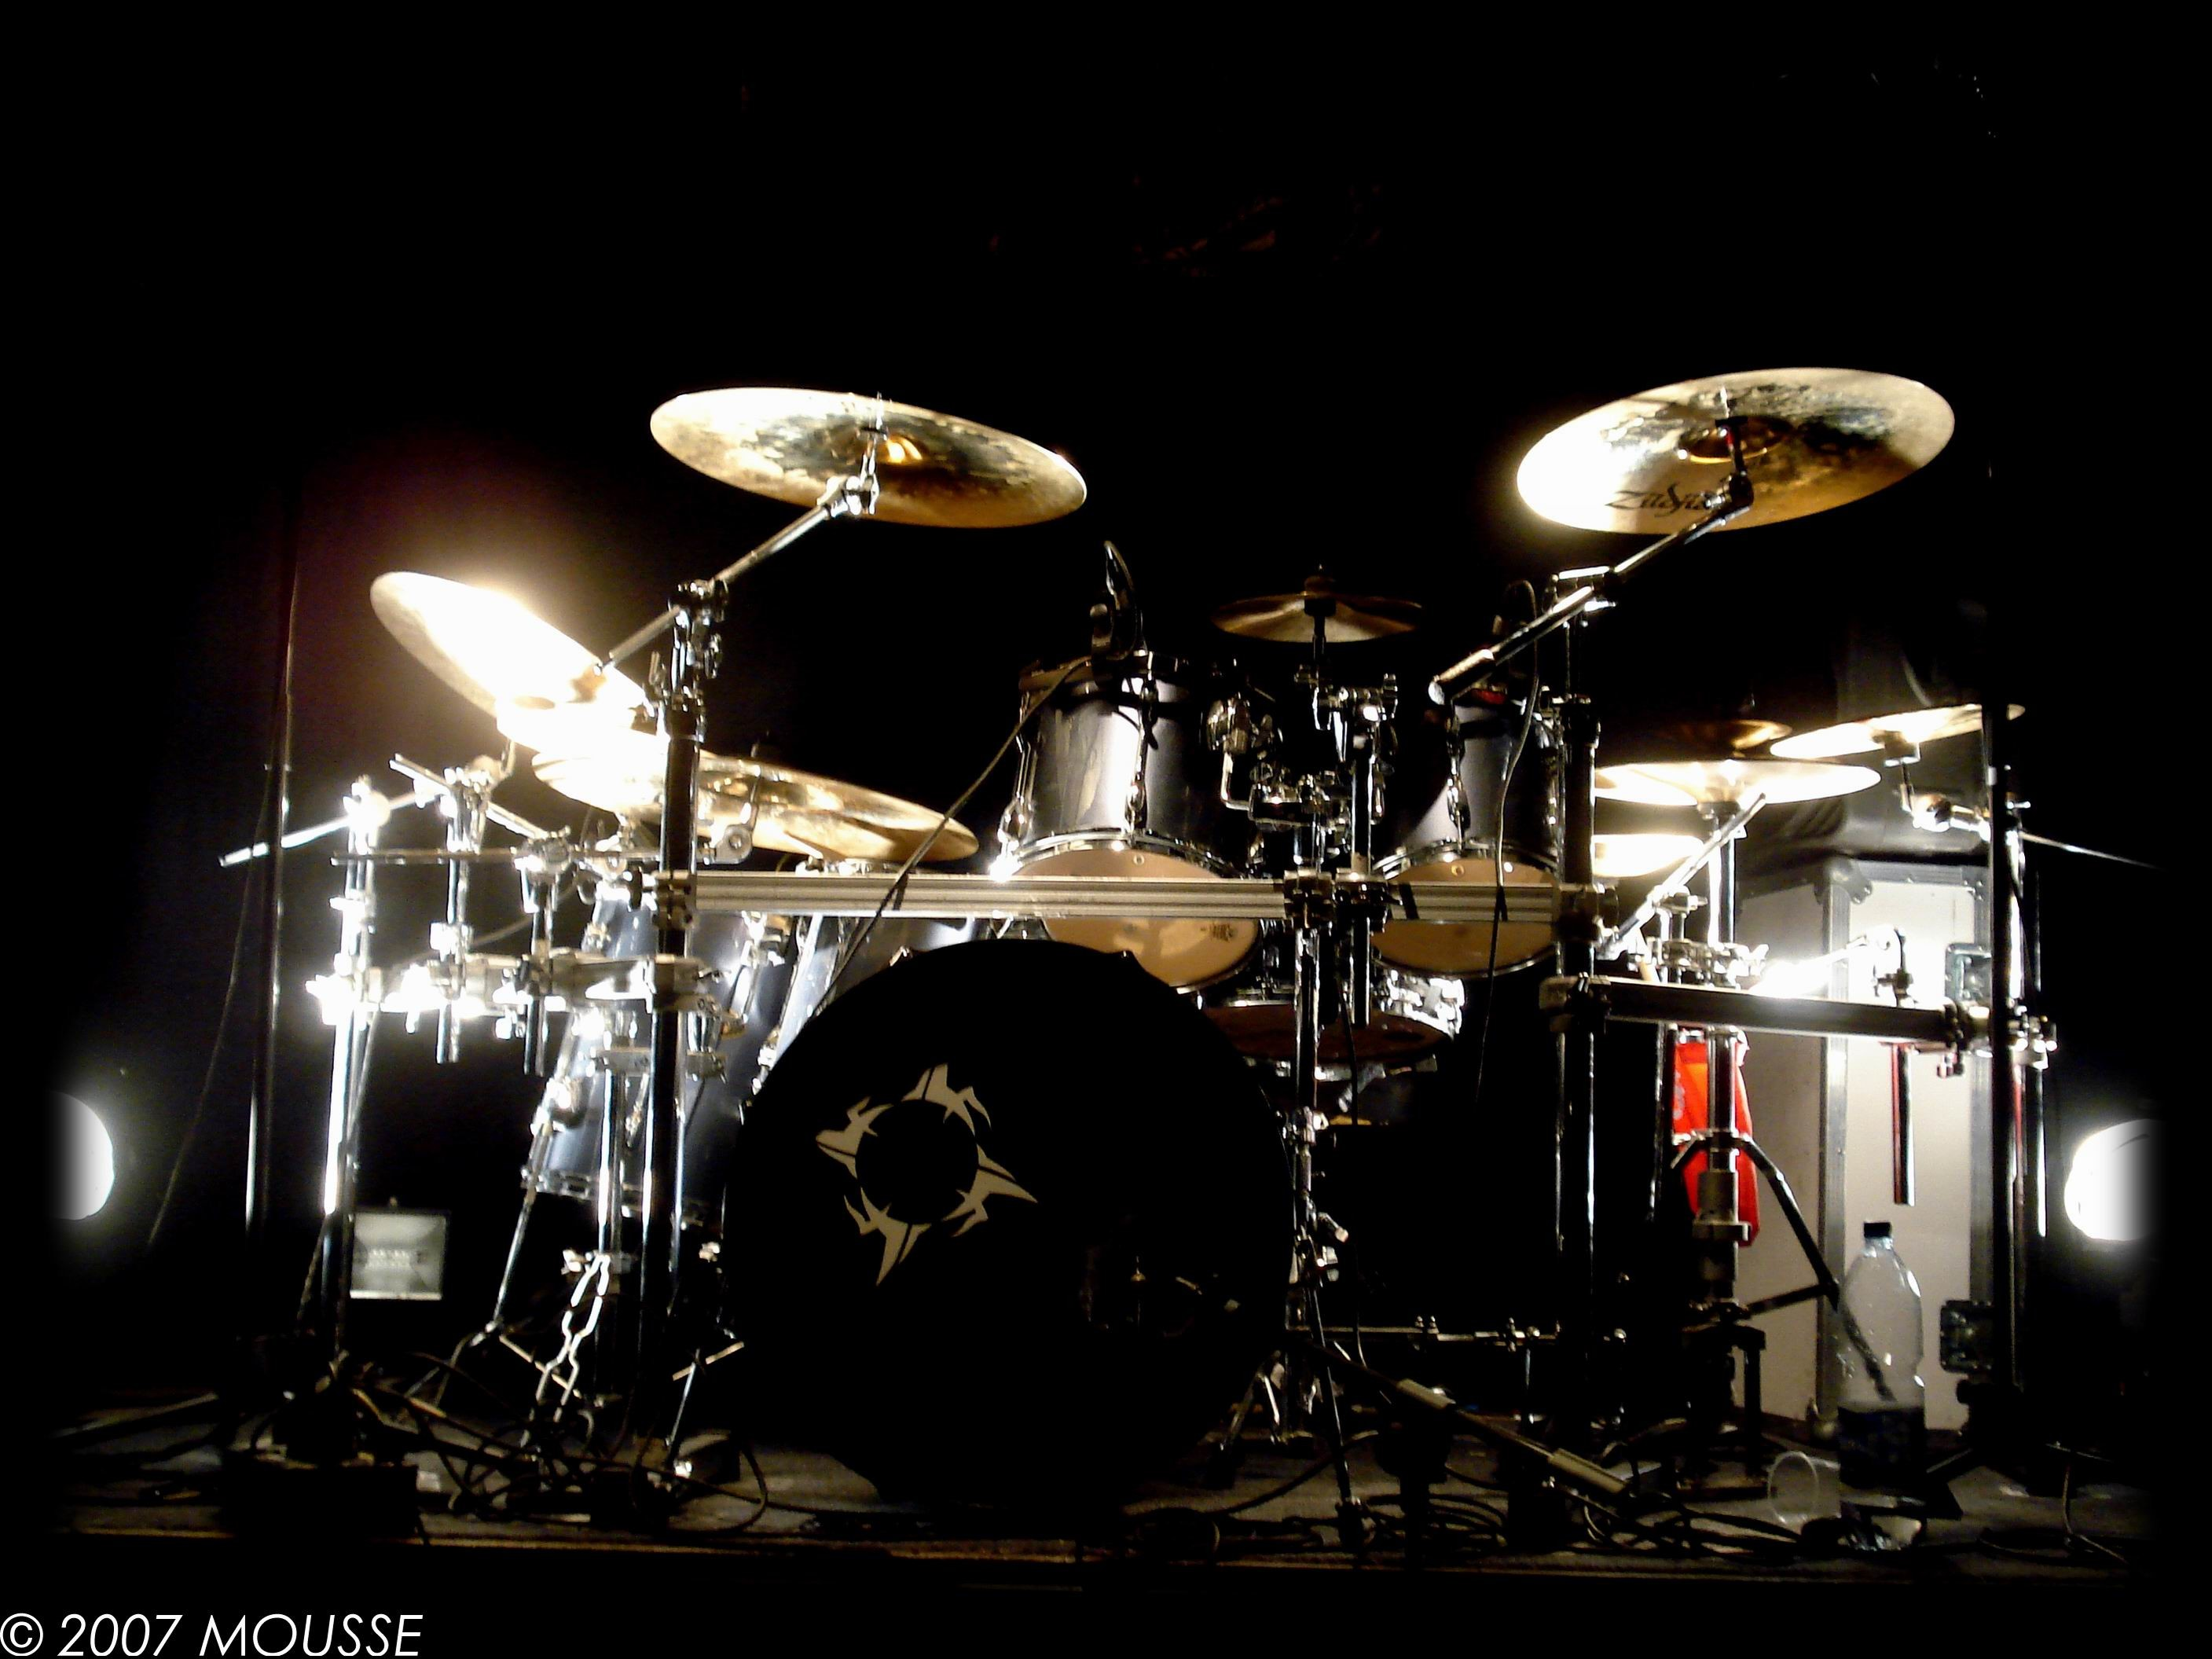 Res: 2815x2111, Wallpapers Sabian Cymbal Screensaver Re Downloadsinfo